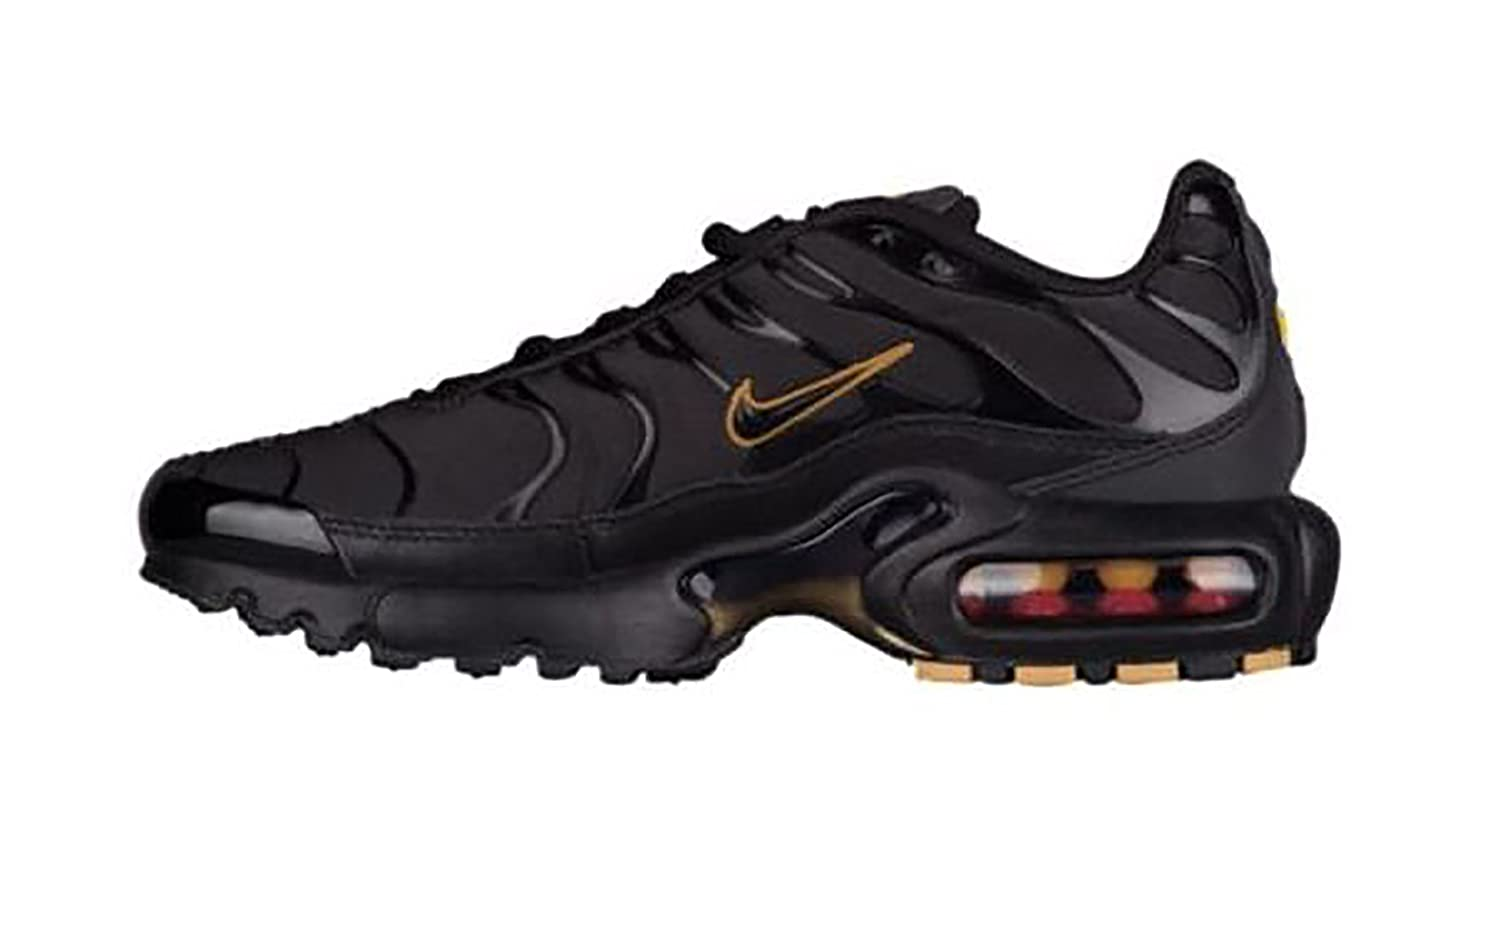 Youth Sneaker 655020 408 GS Nike Air Max Plus TN